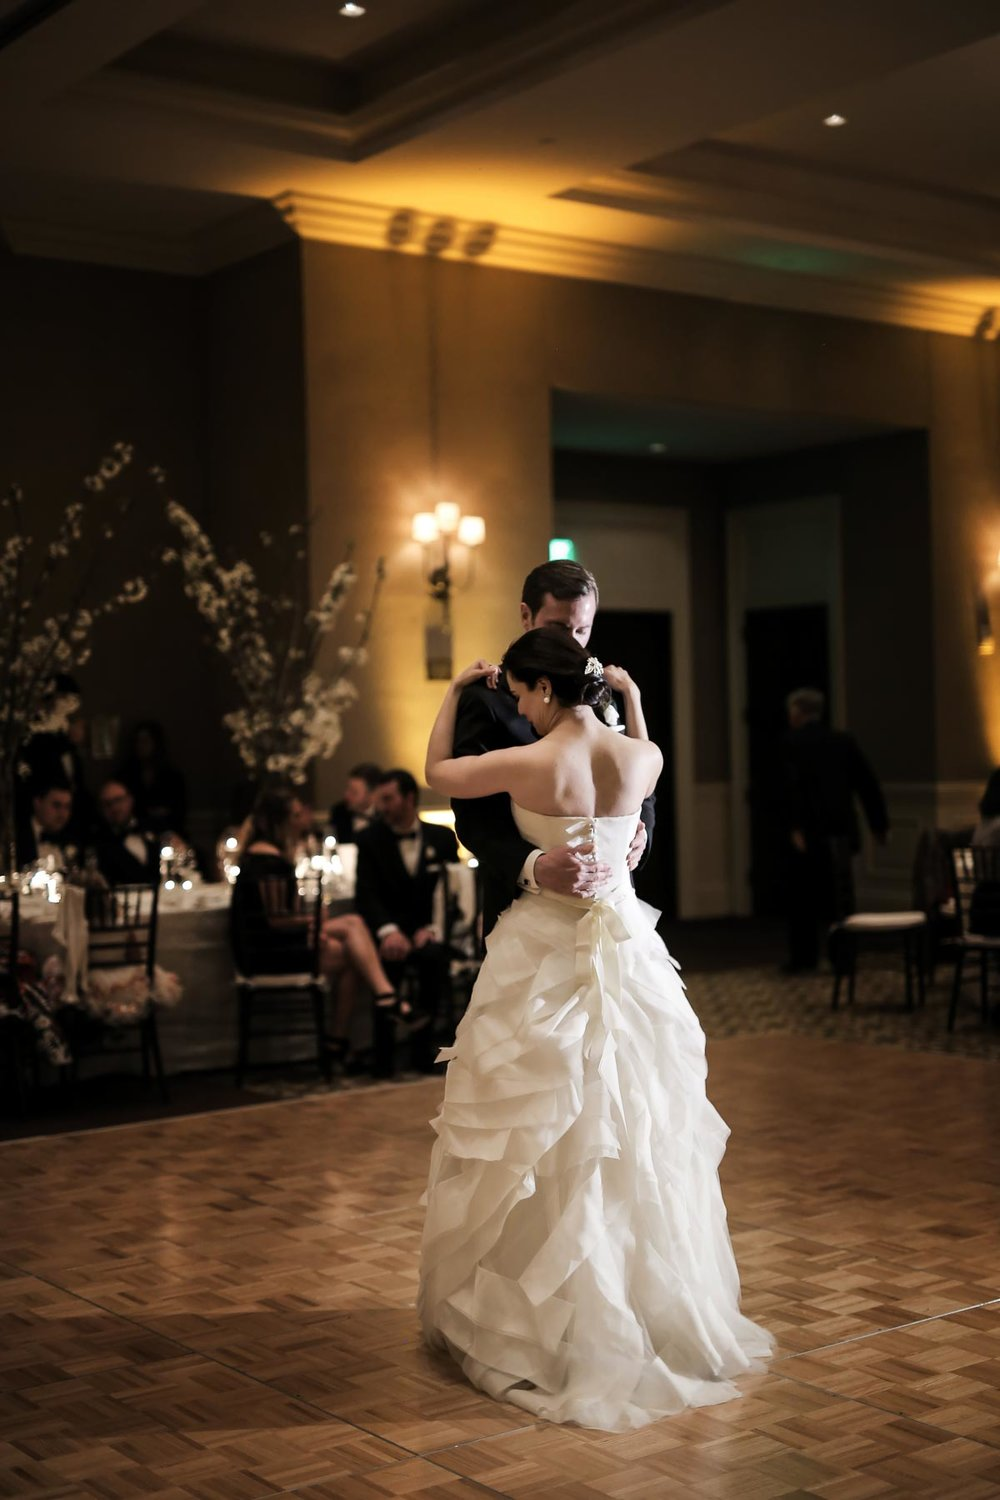 first-dance-real-wedding-montage-deer-valley-park-city-weddings_pepper_nix_photography-50.jpg